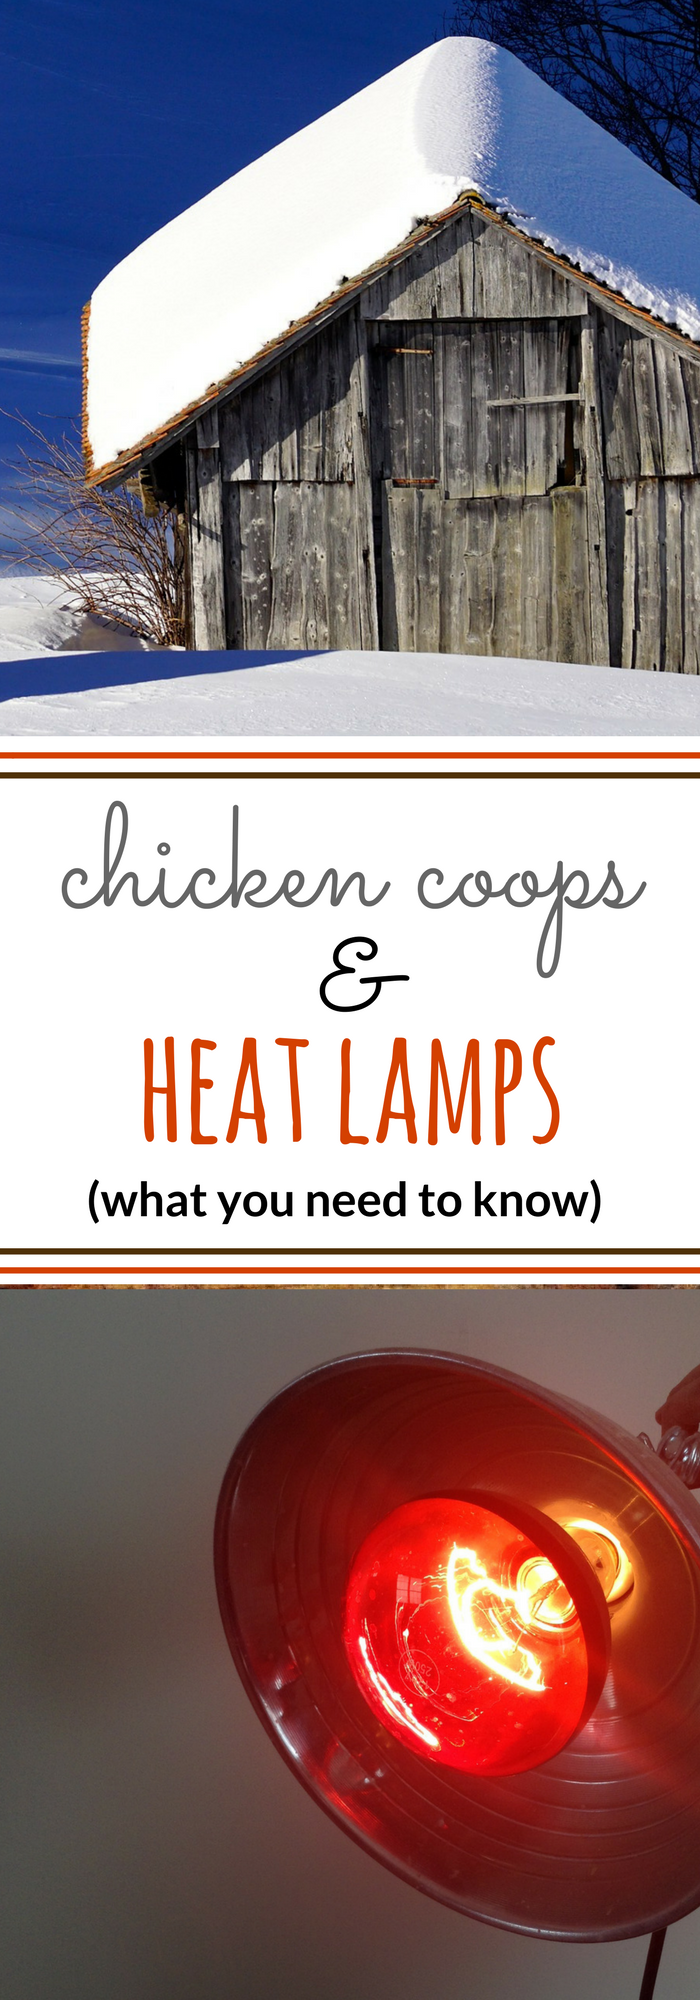 Does The Coop Need A Heat Lamp Salt In My Coffee Blog Posts Raising Backyard Chickens